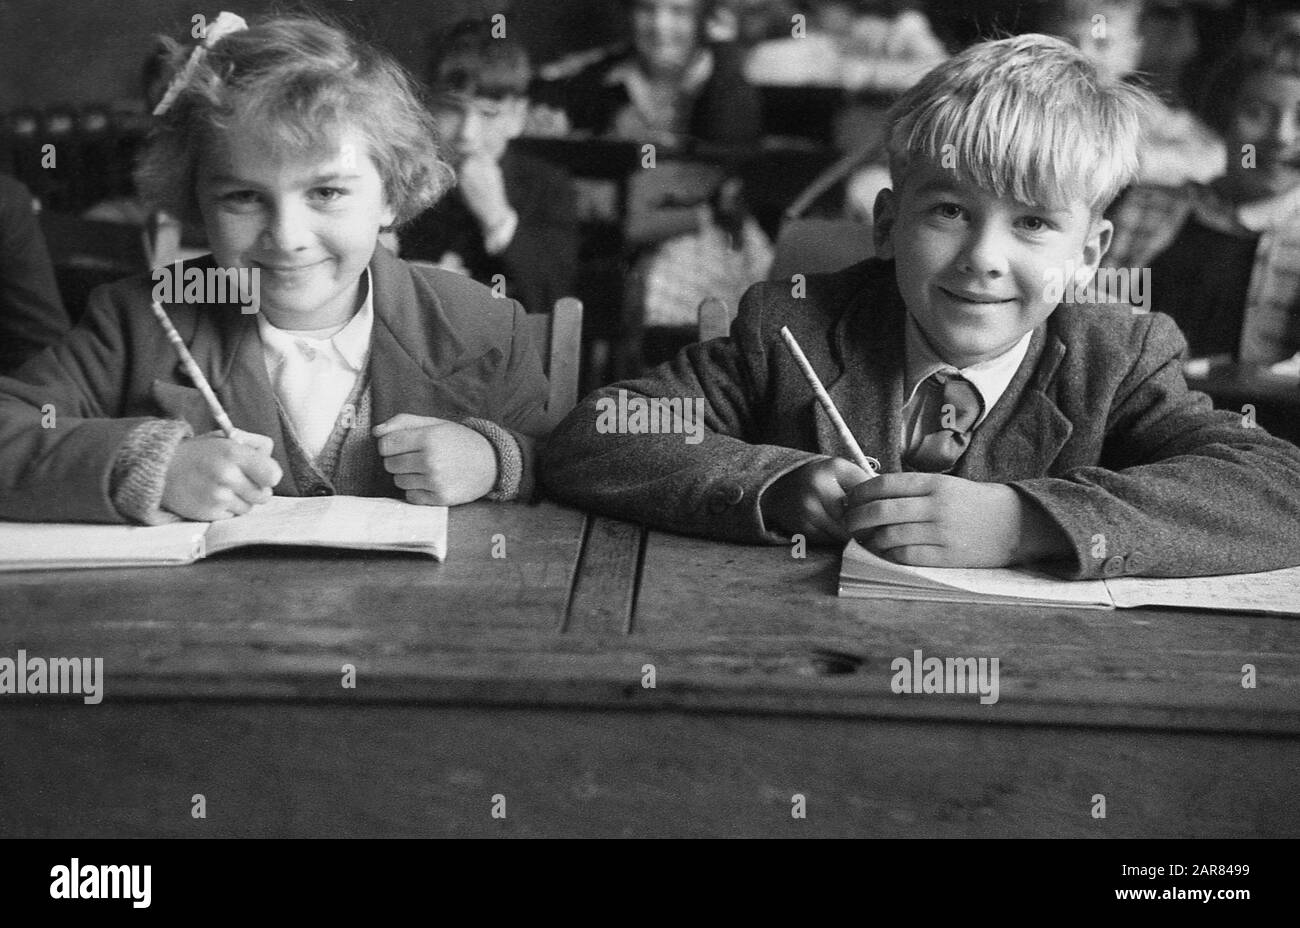 1955, historical, two young primary schoolchildren sitting beside each other at a wooden desk of the era in a classroom, eager to learn with their writing books open and pencils in hand, England, UK. Stock Photo